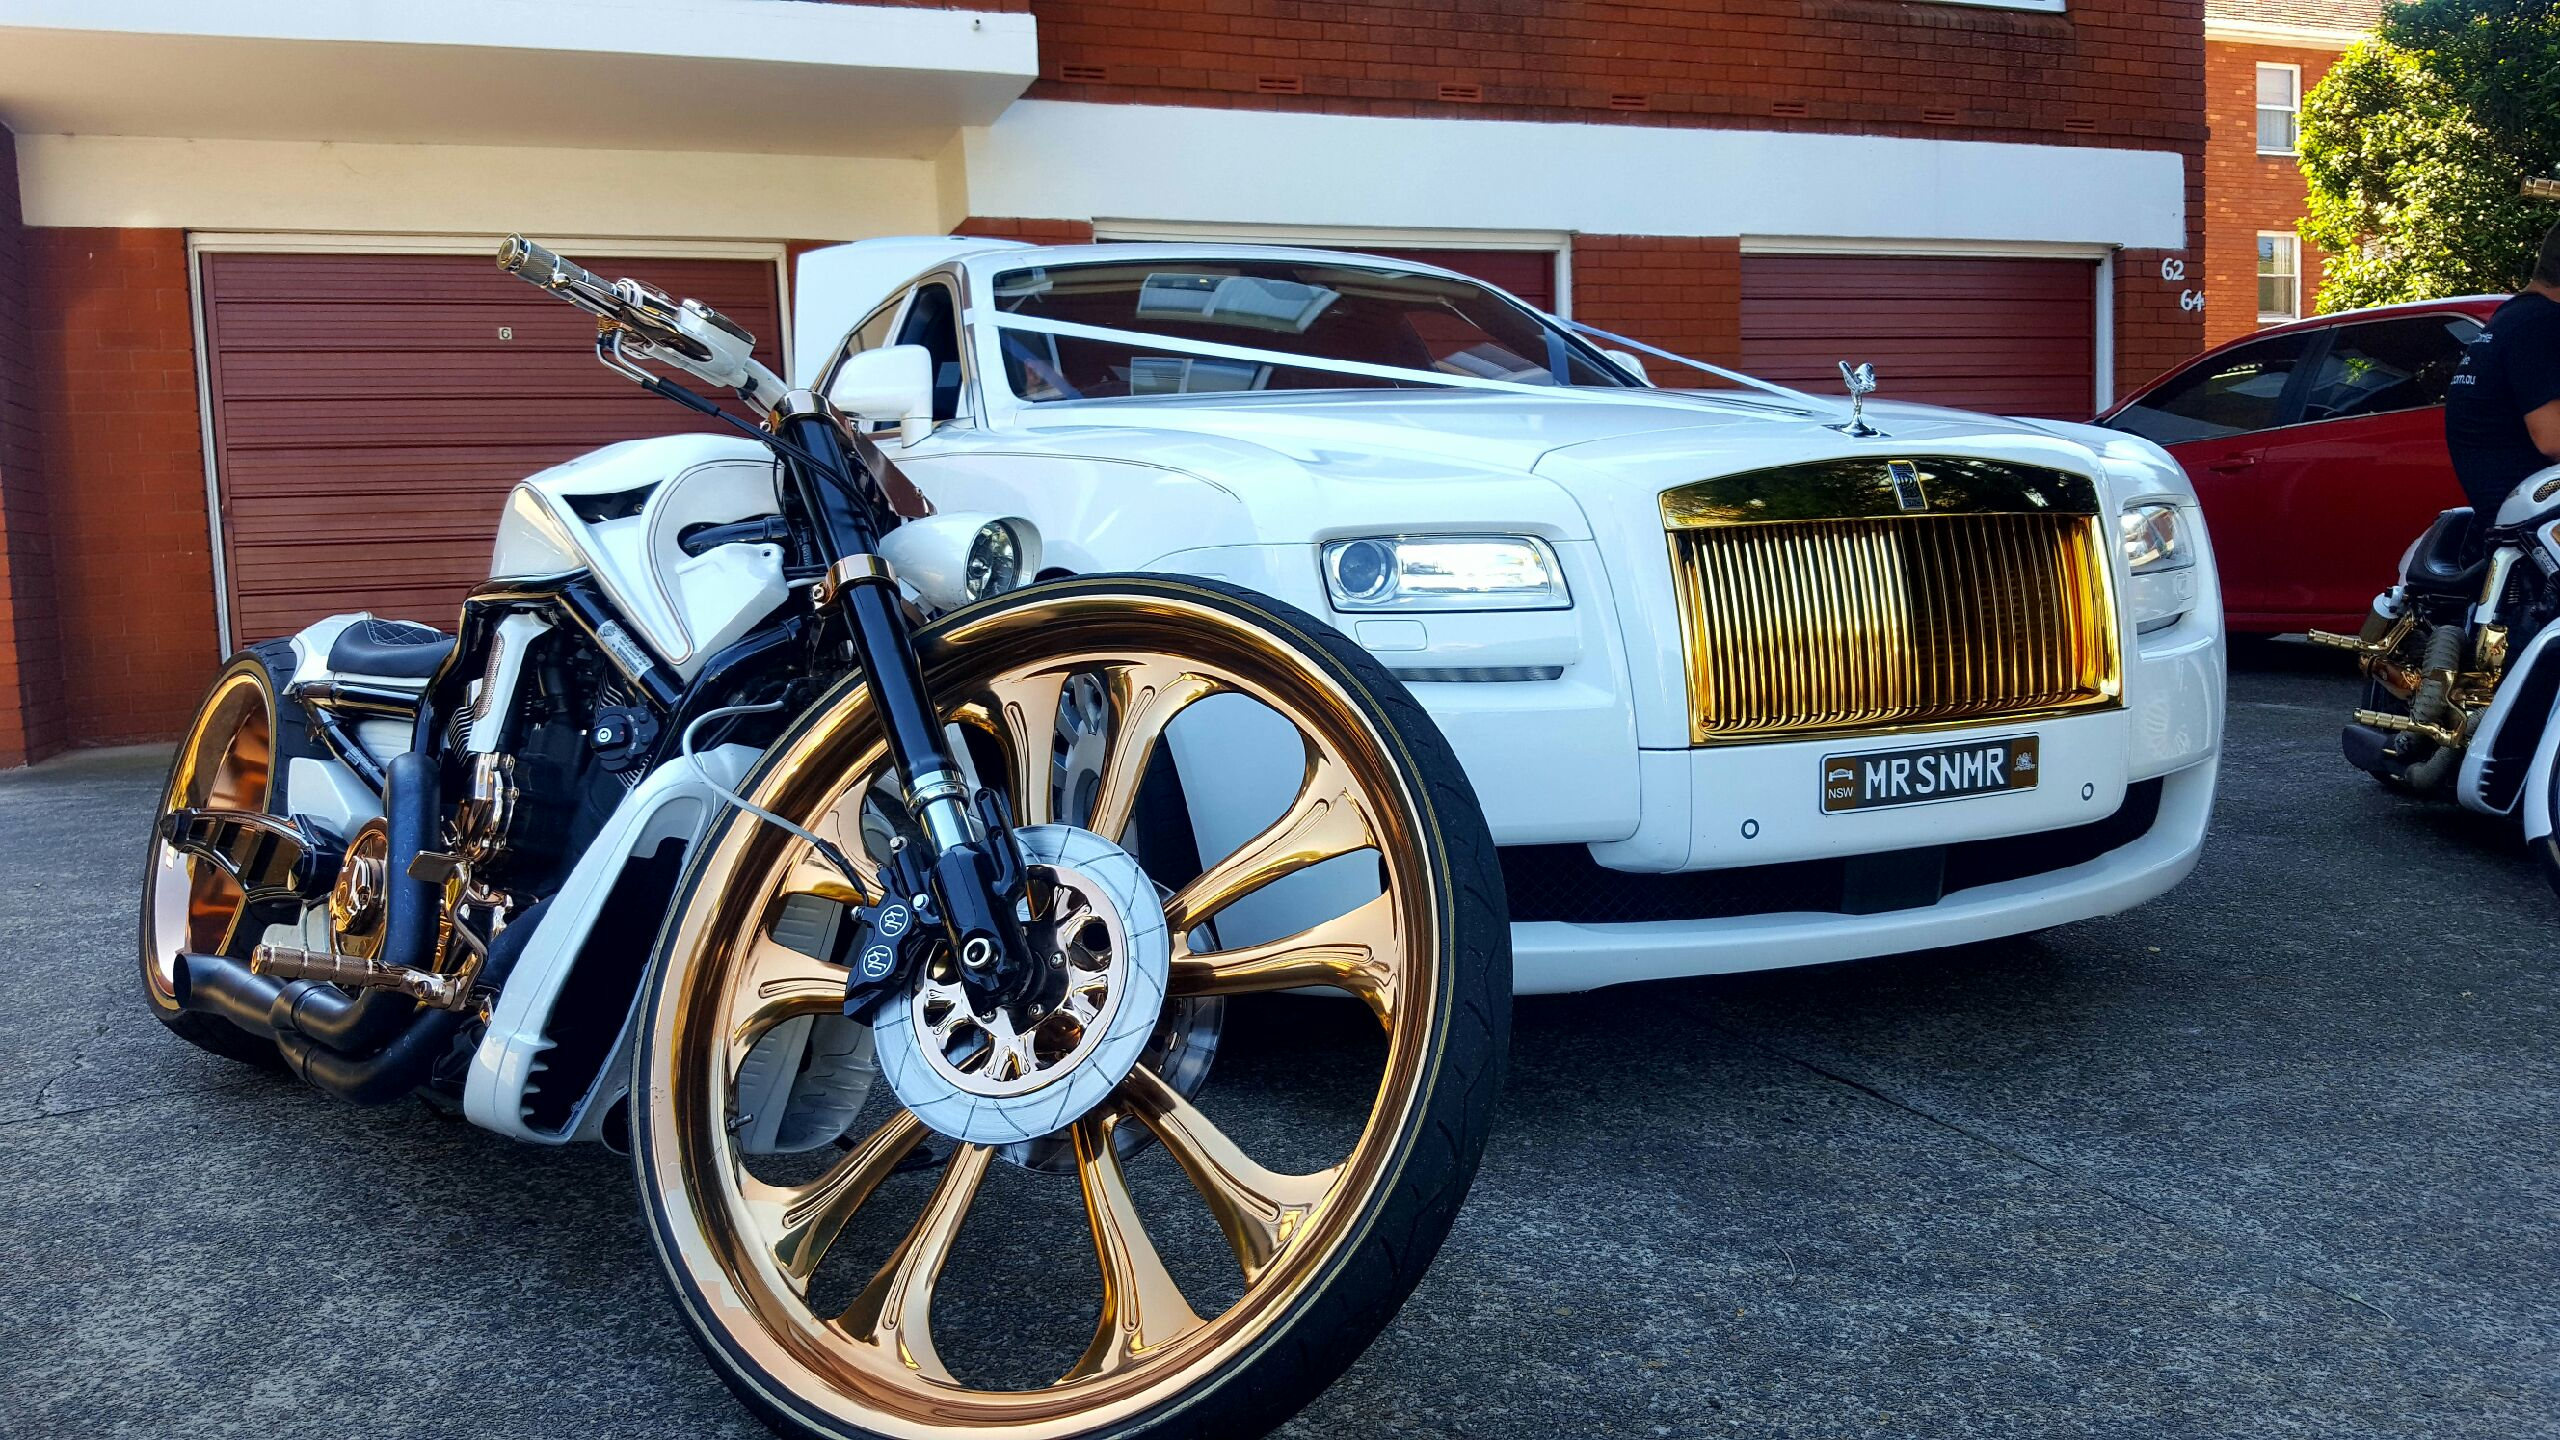 30 Inch Speakers And 30 Inch Rims : Entice rolls royce ghost and inch front wheel vrod